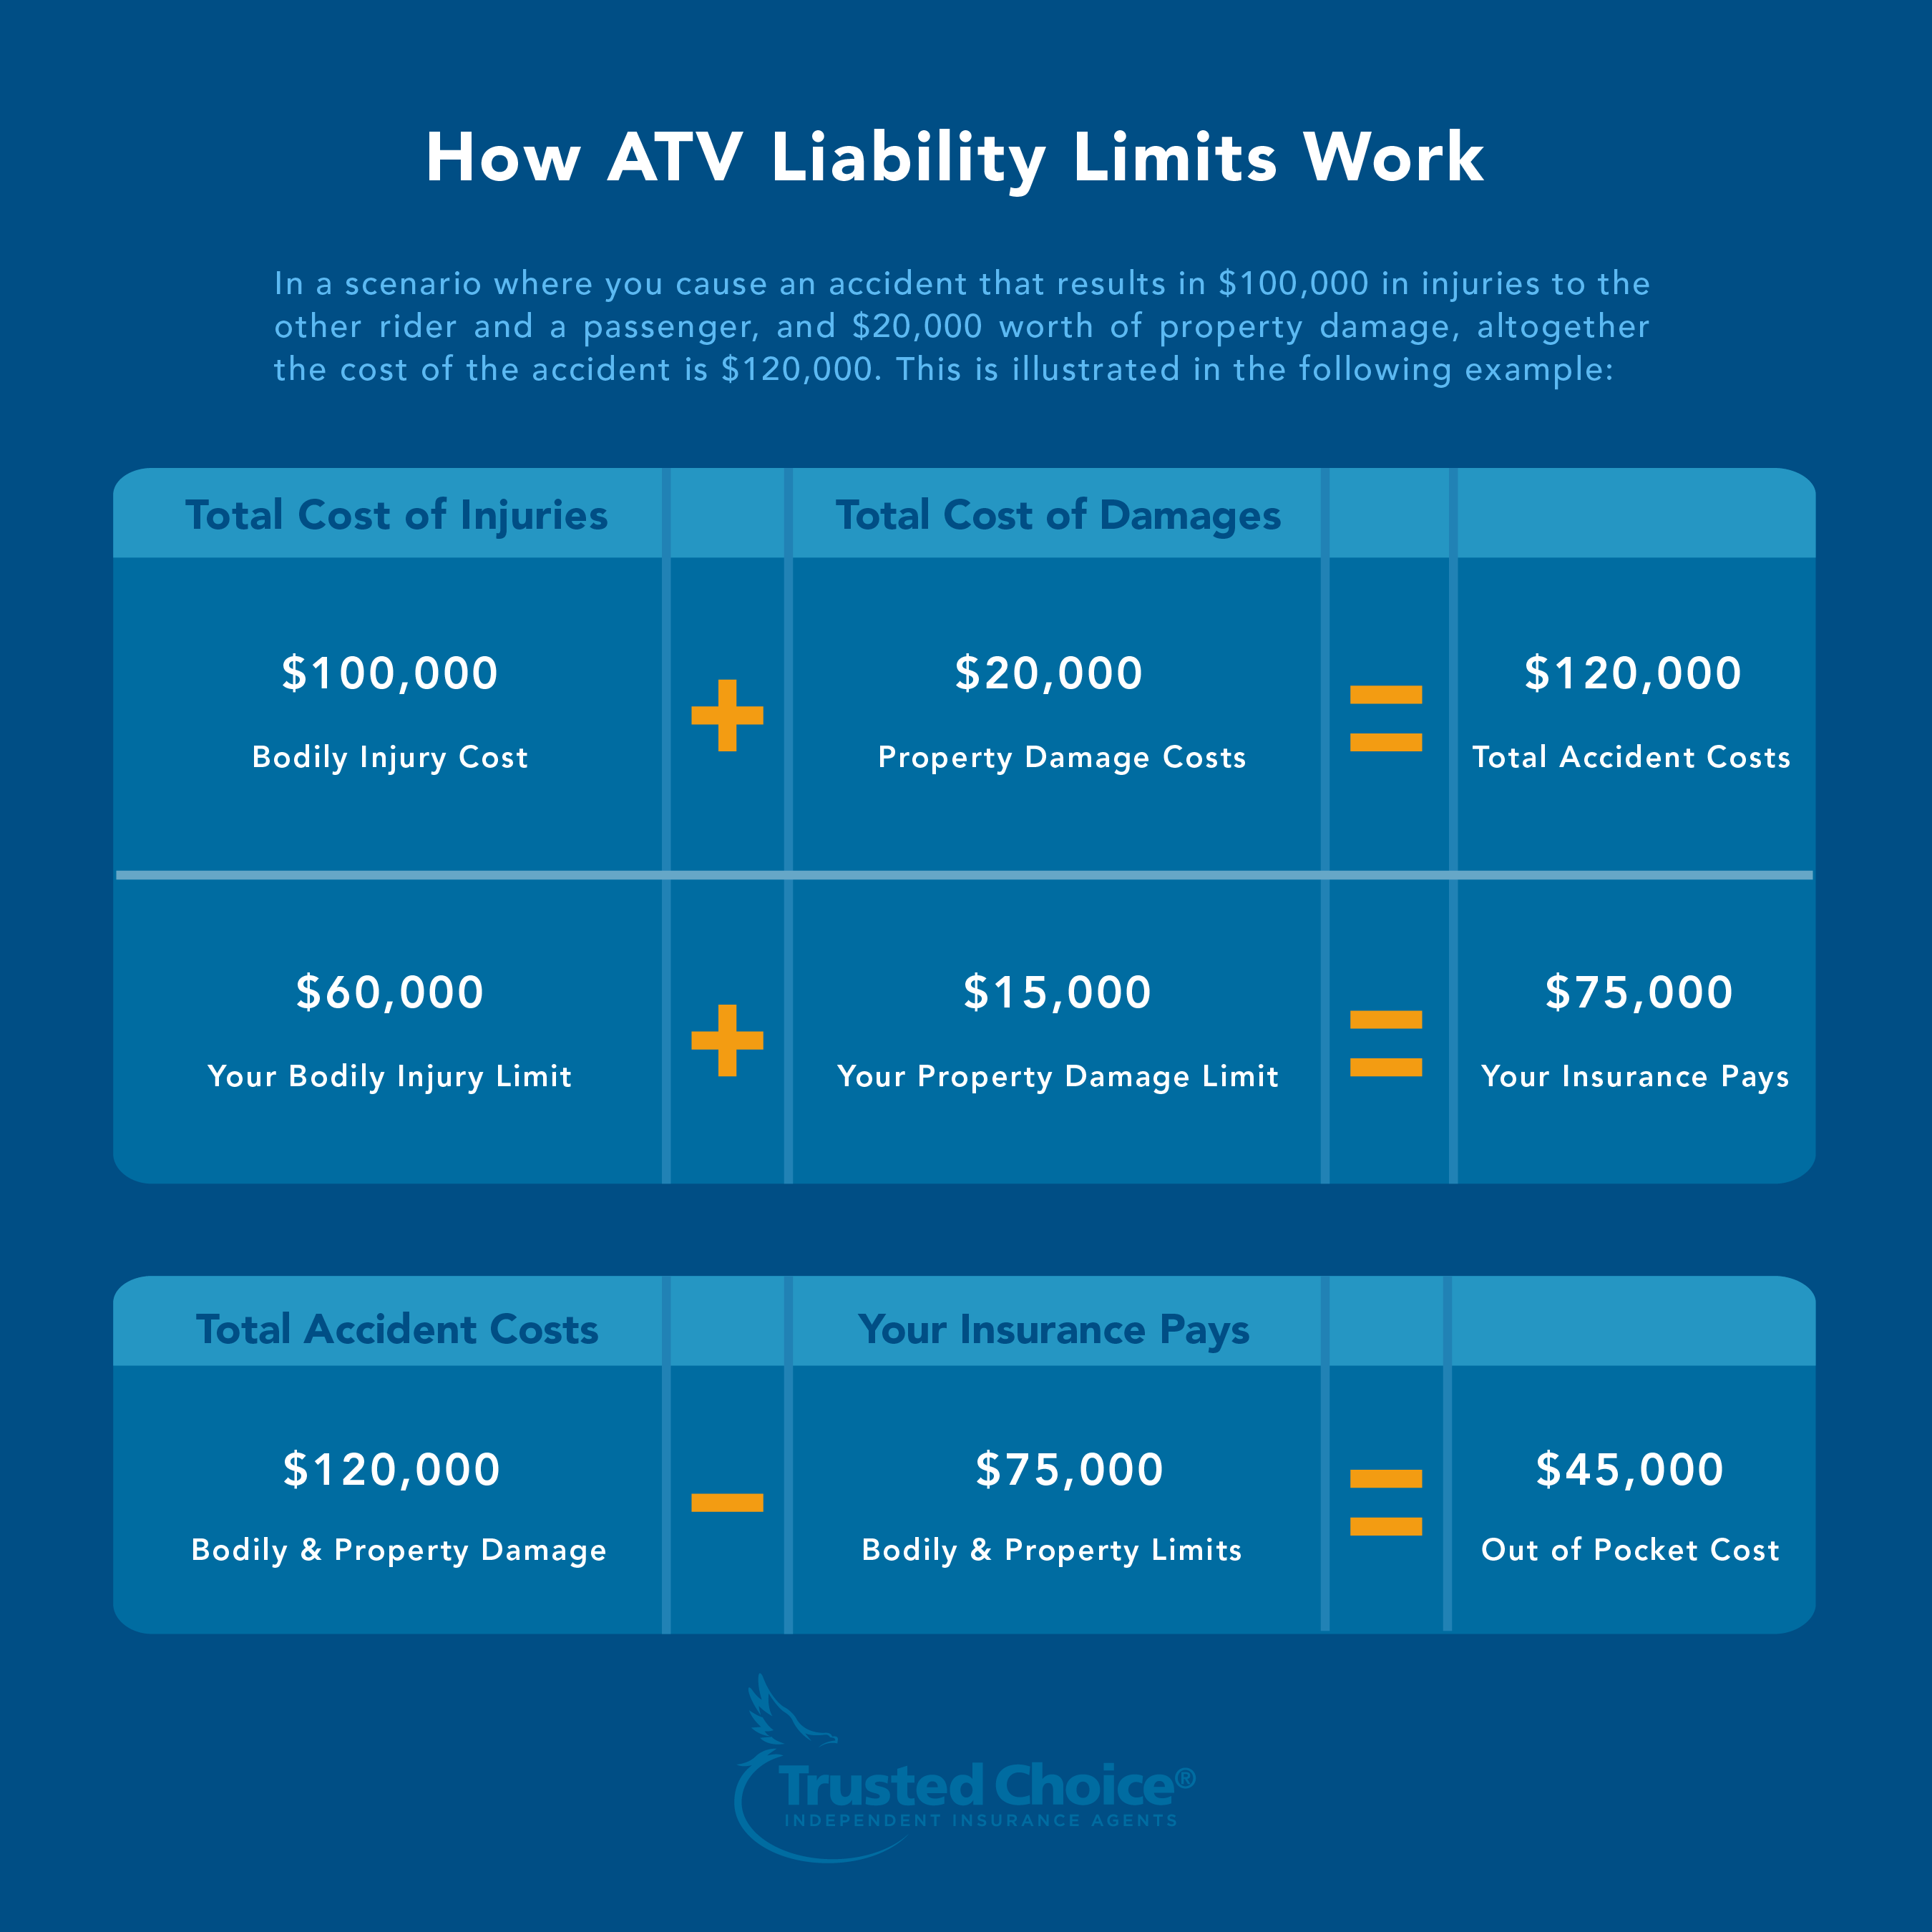 ATV Liability Insurance Example